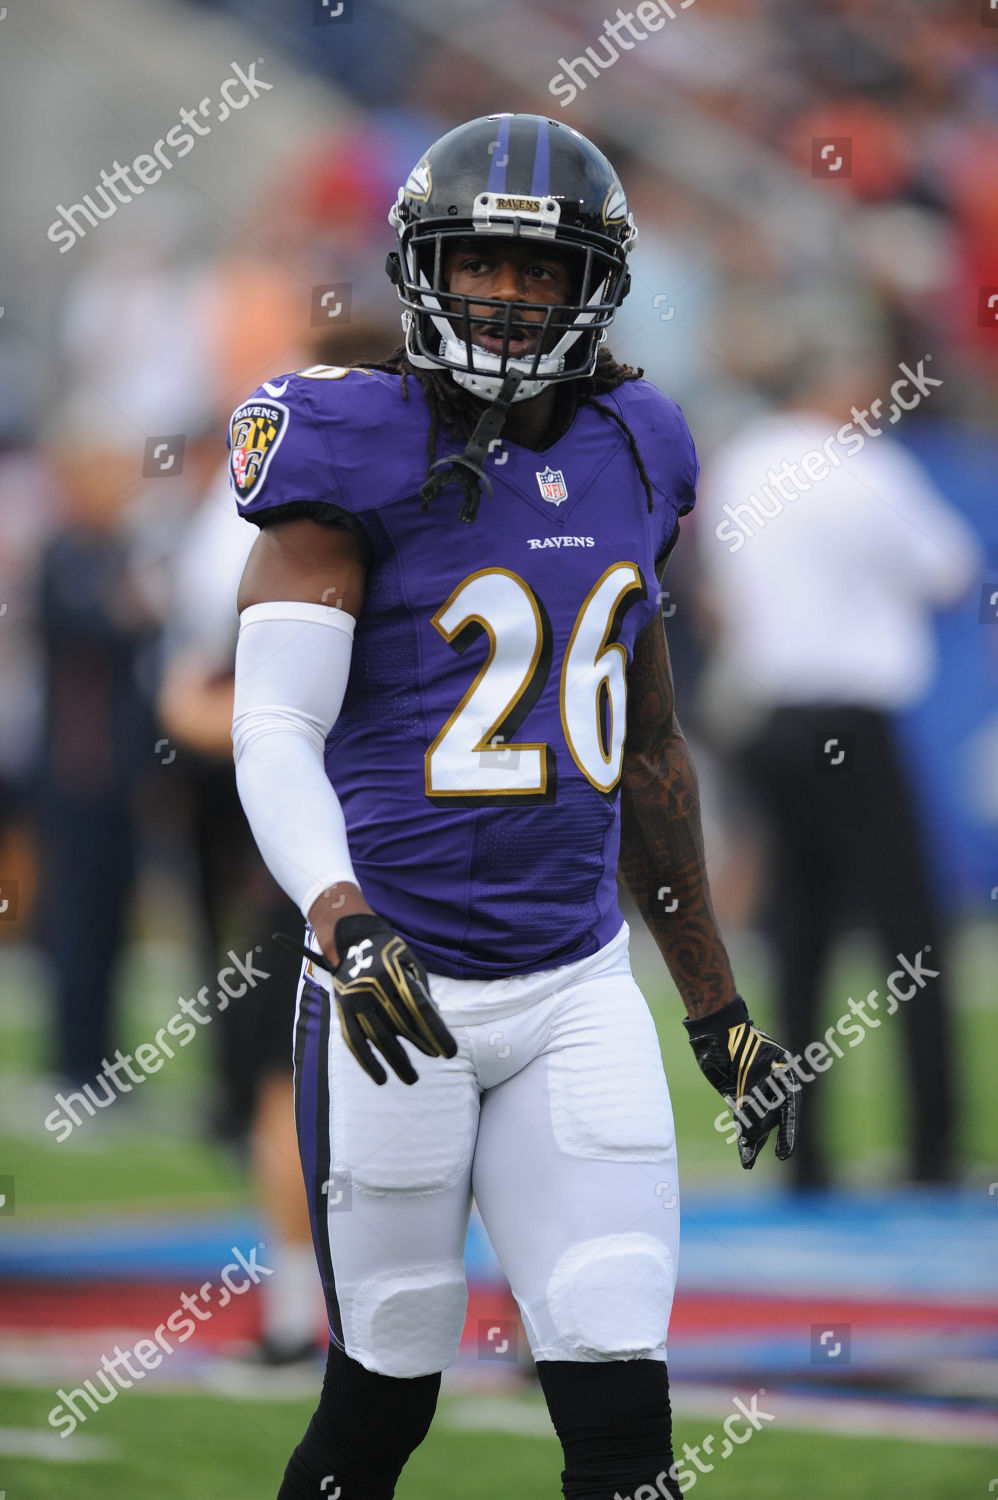 new arrival 2f230 8b56a nd Ravens 26 Maurice Canady during Chicago Editorial Stock ...